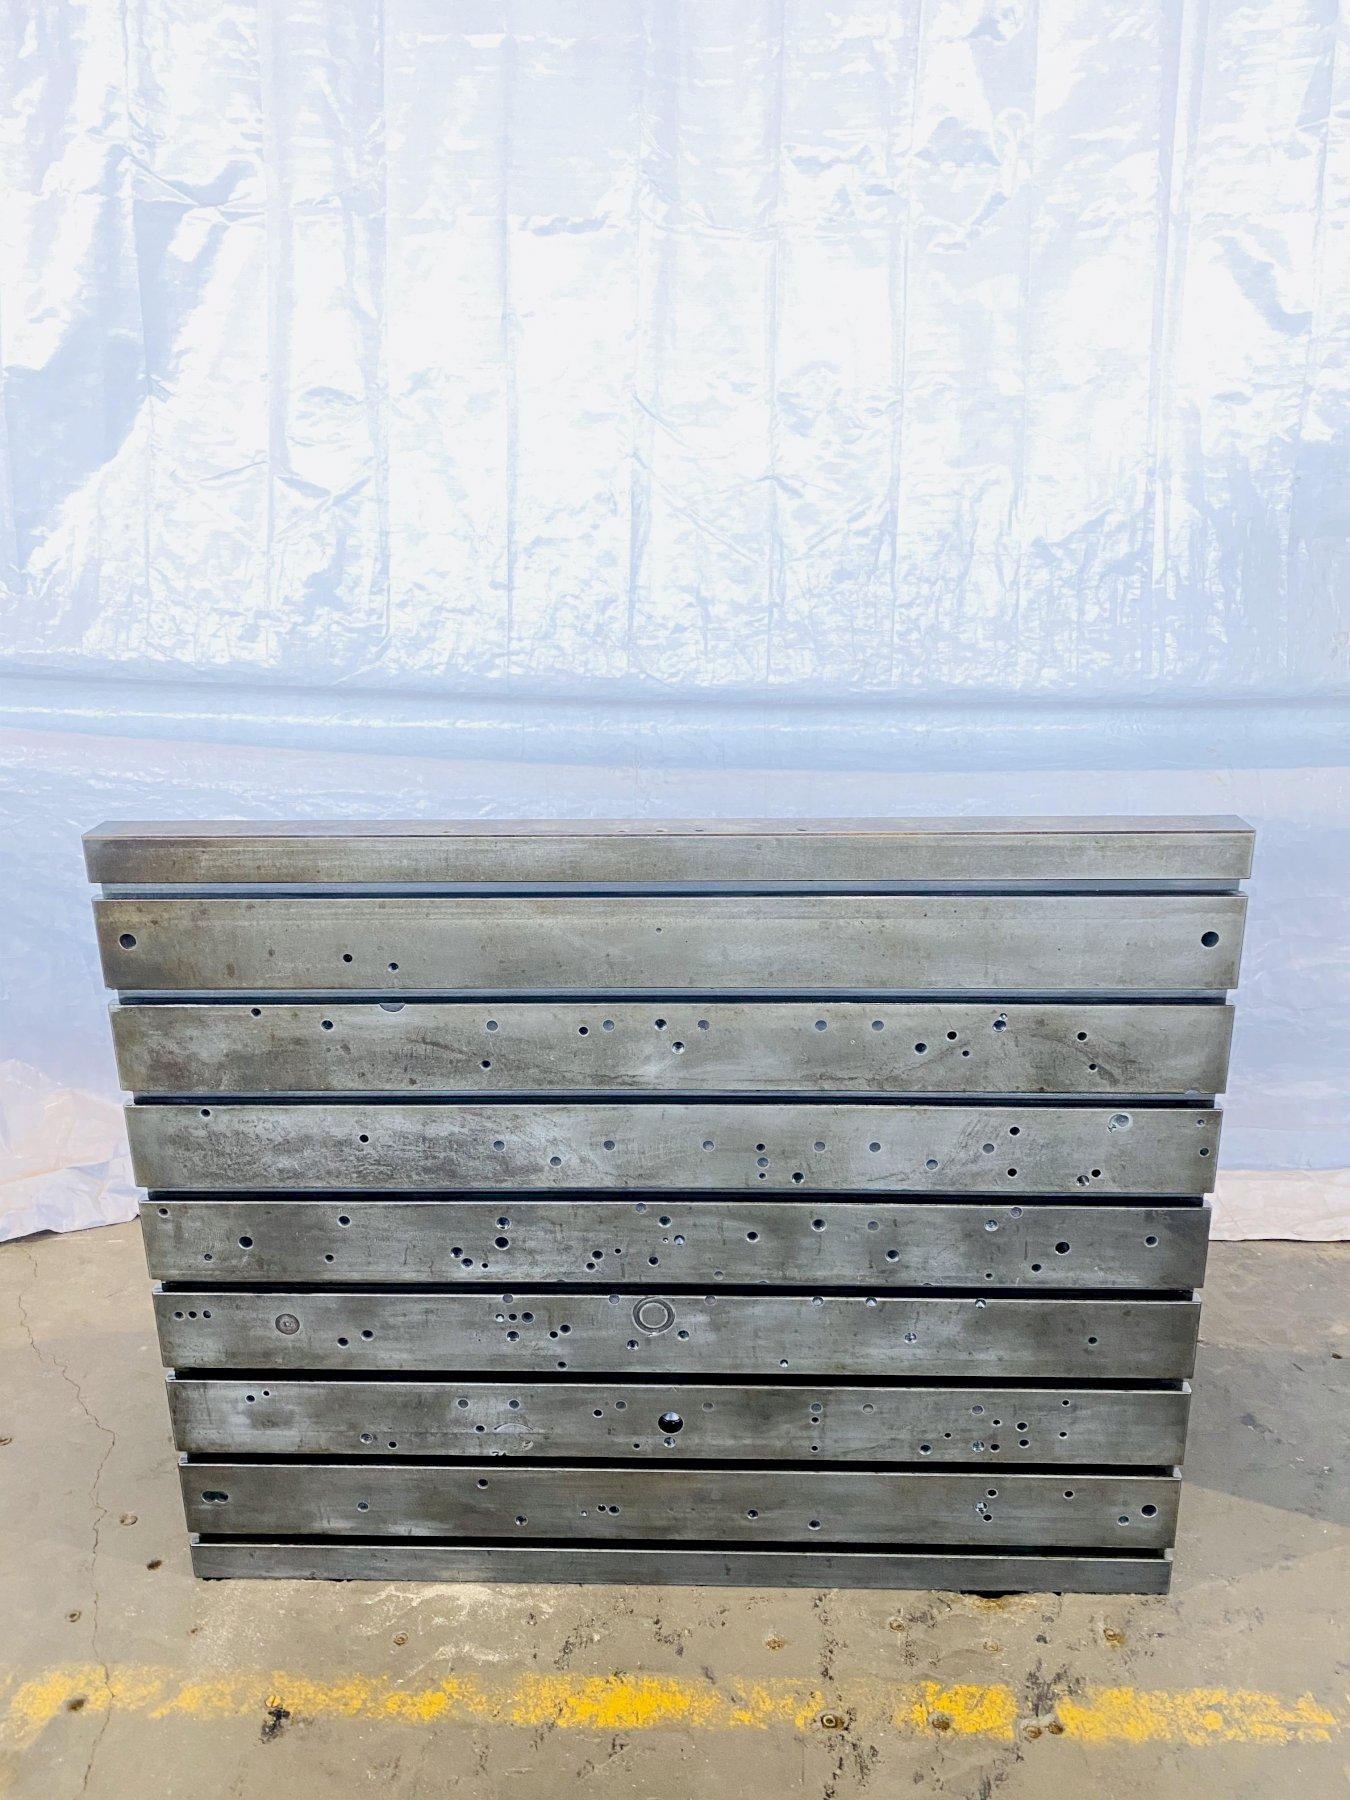 """48"""" T x 60"""" L x 26"""" D T SLOTTED ANGLE PLATE. STOCK # 0506920"""